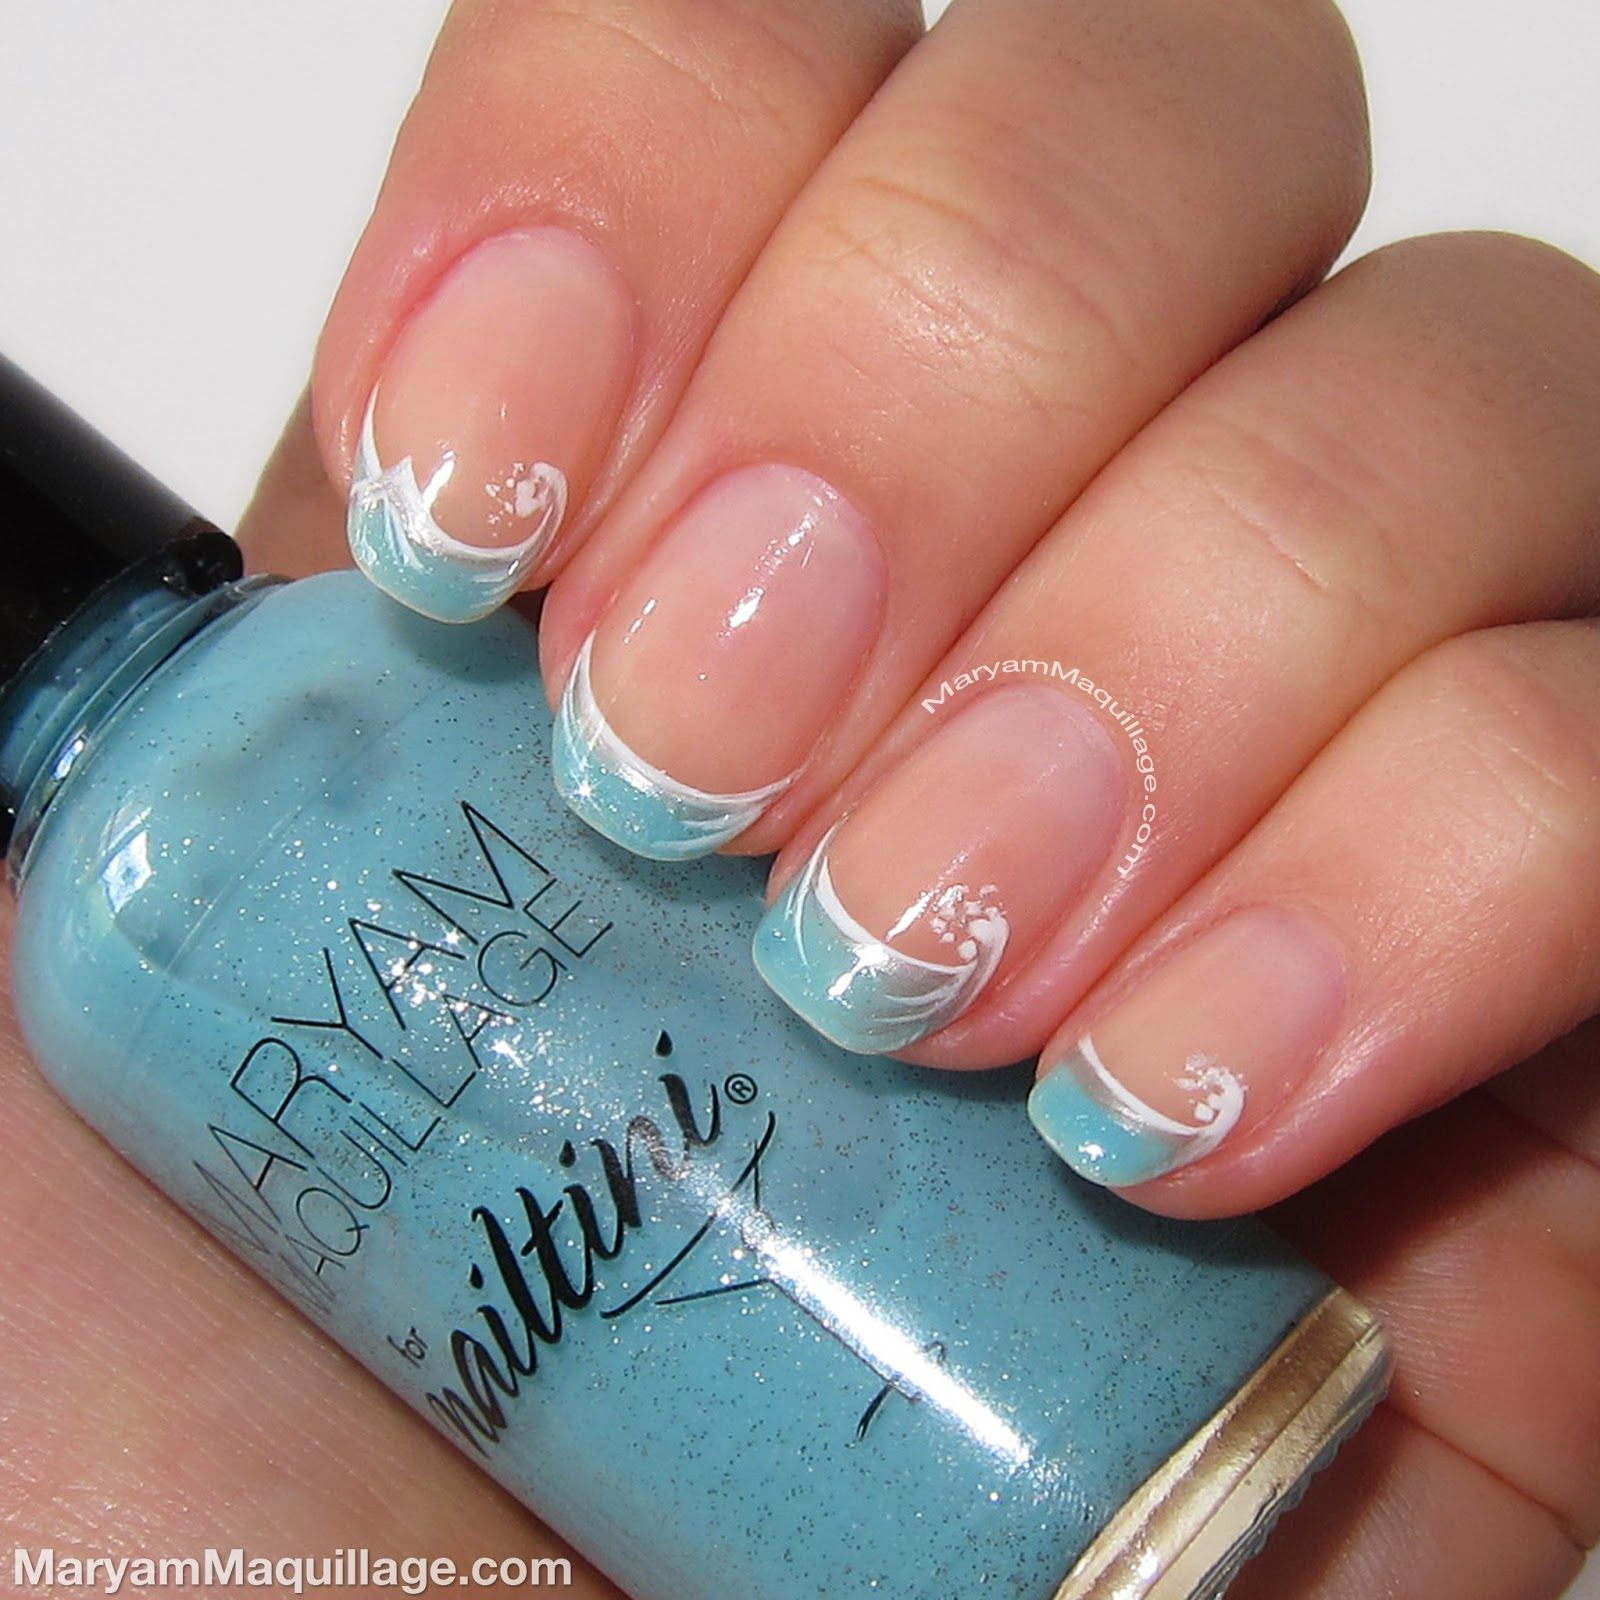 Maryam Maquillage Ocean Waves Artistic French Nail Art Nails